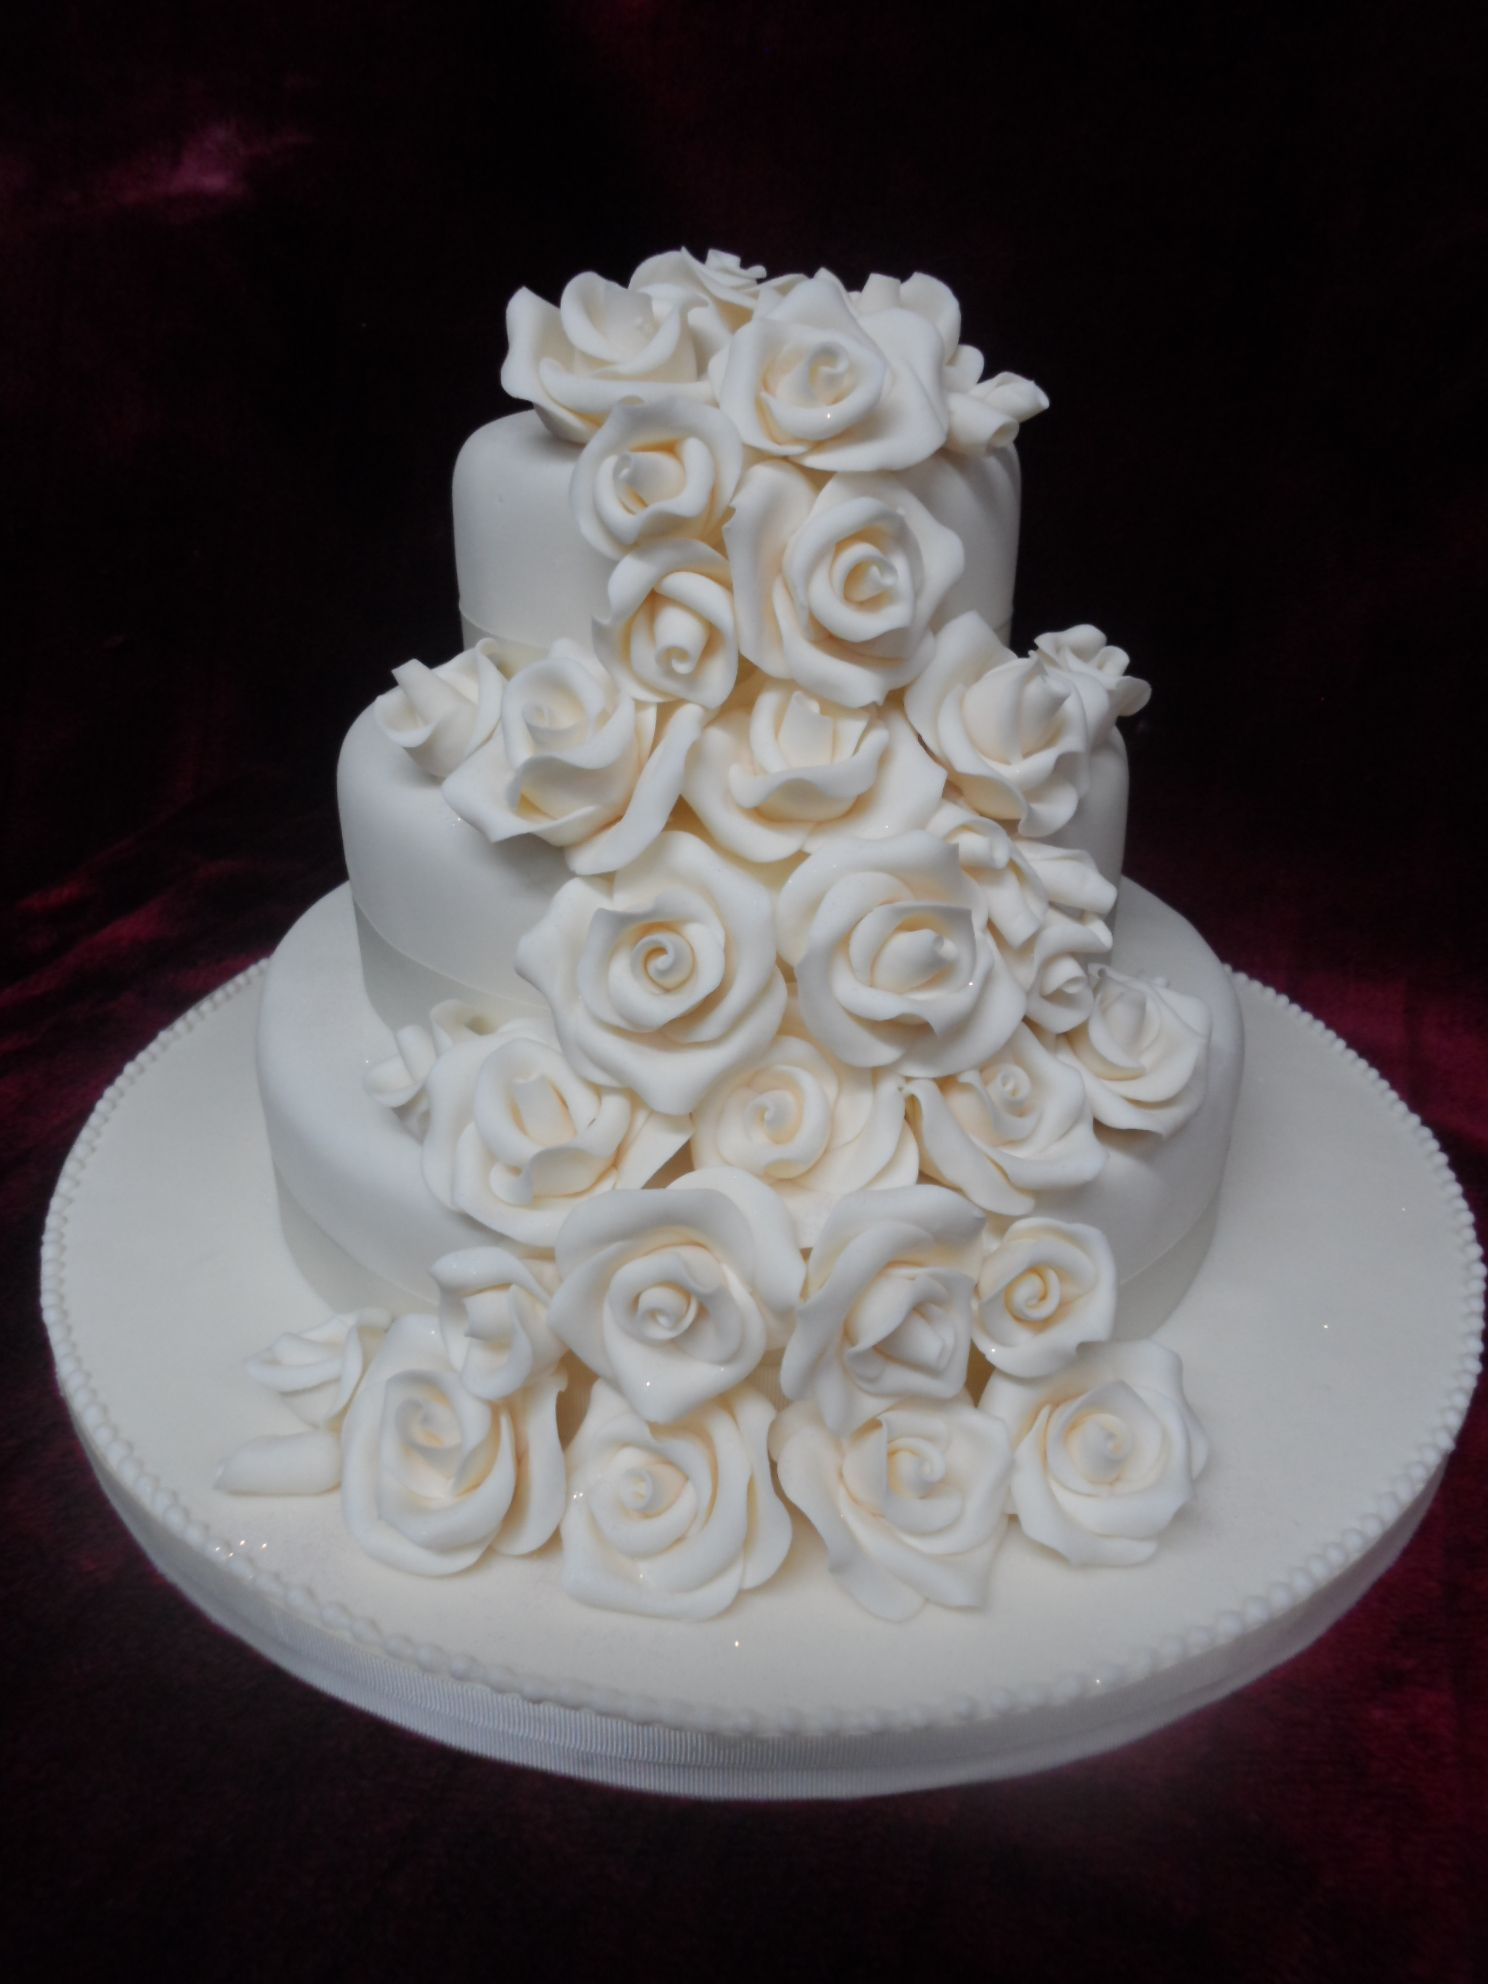 3 Tier Square Wedding Cake Fresco Woosh Co Nz Email